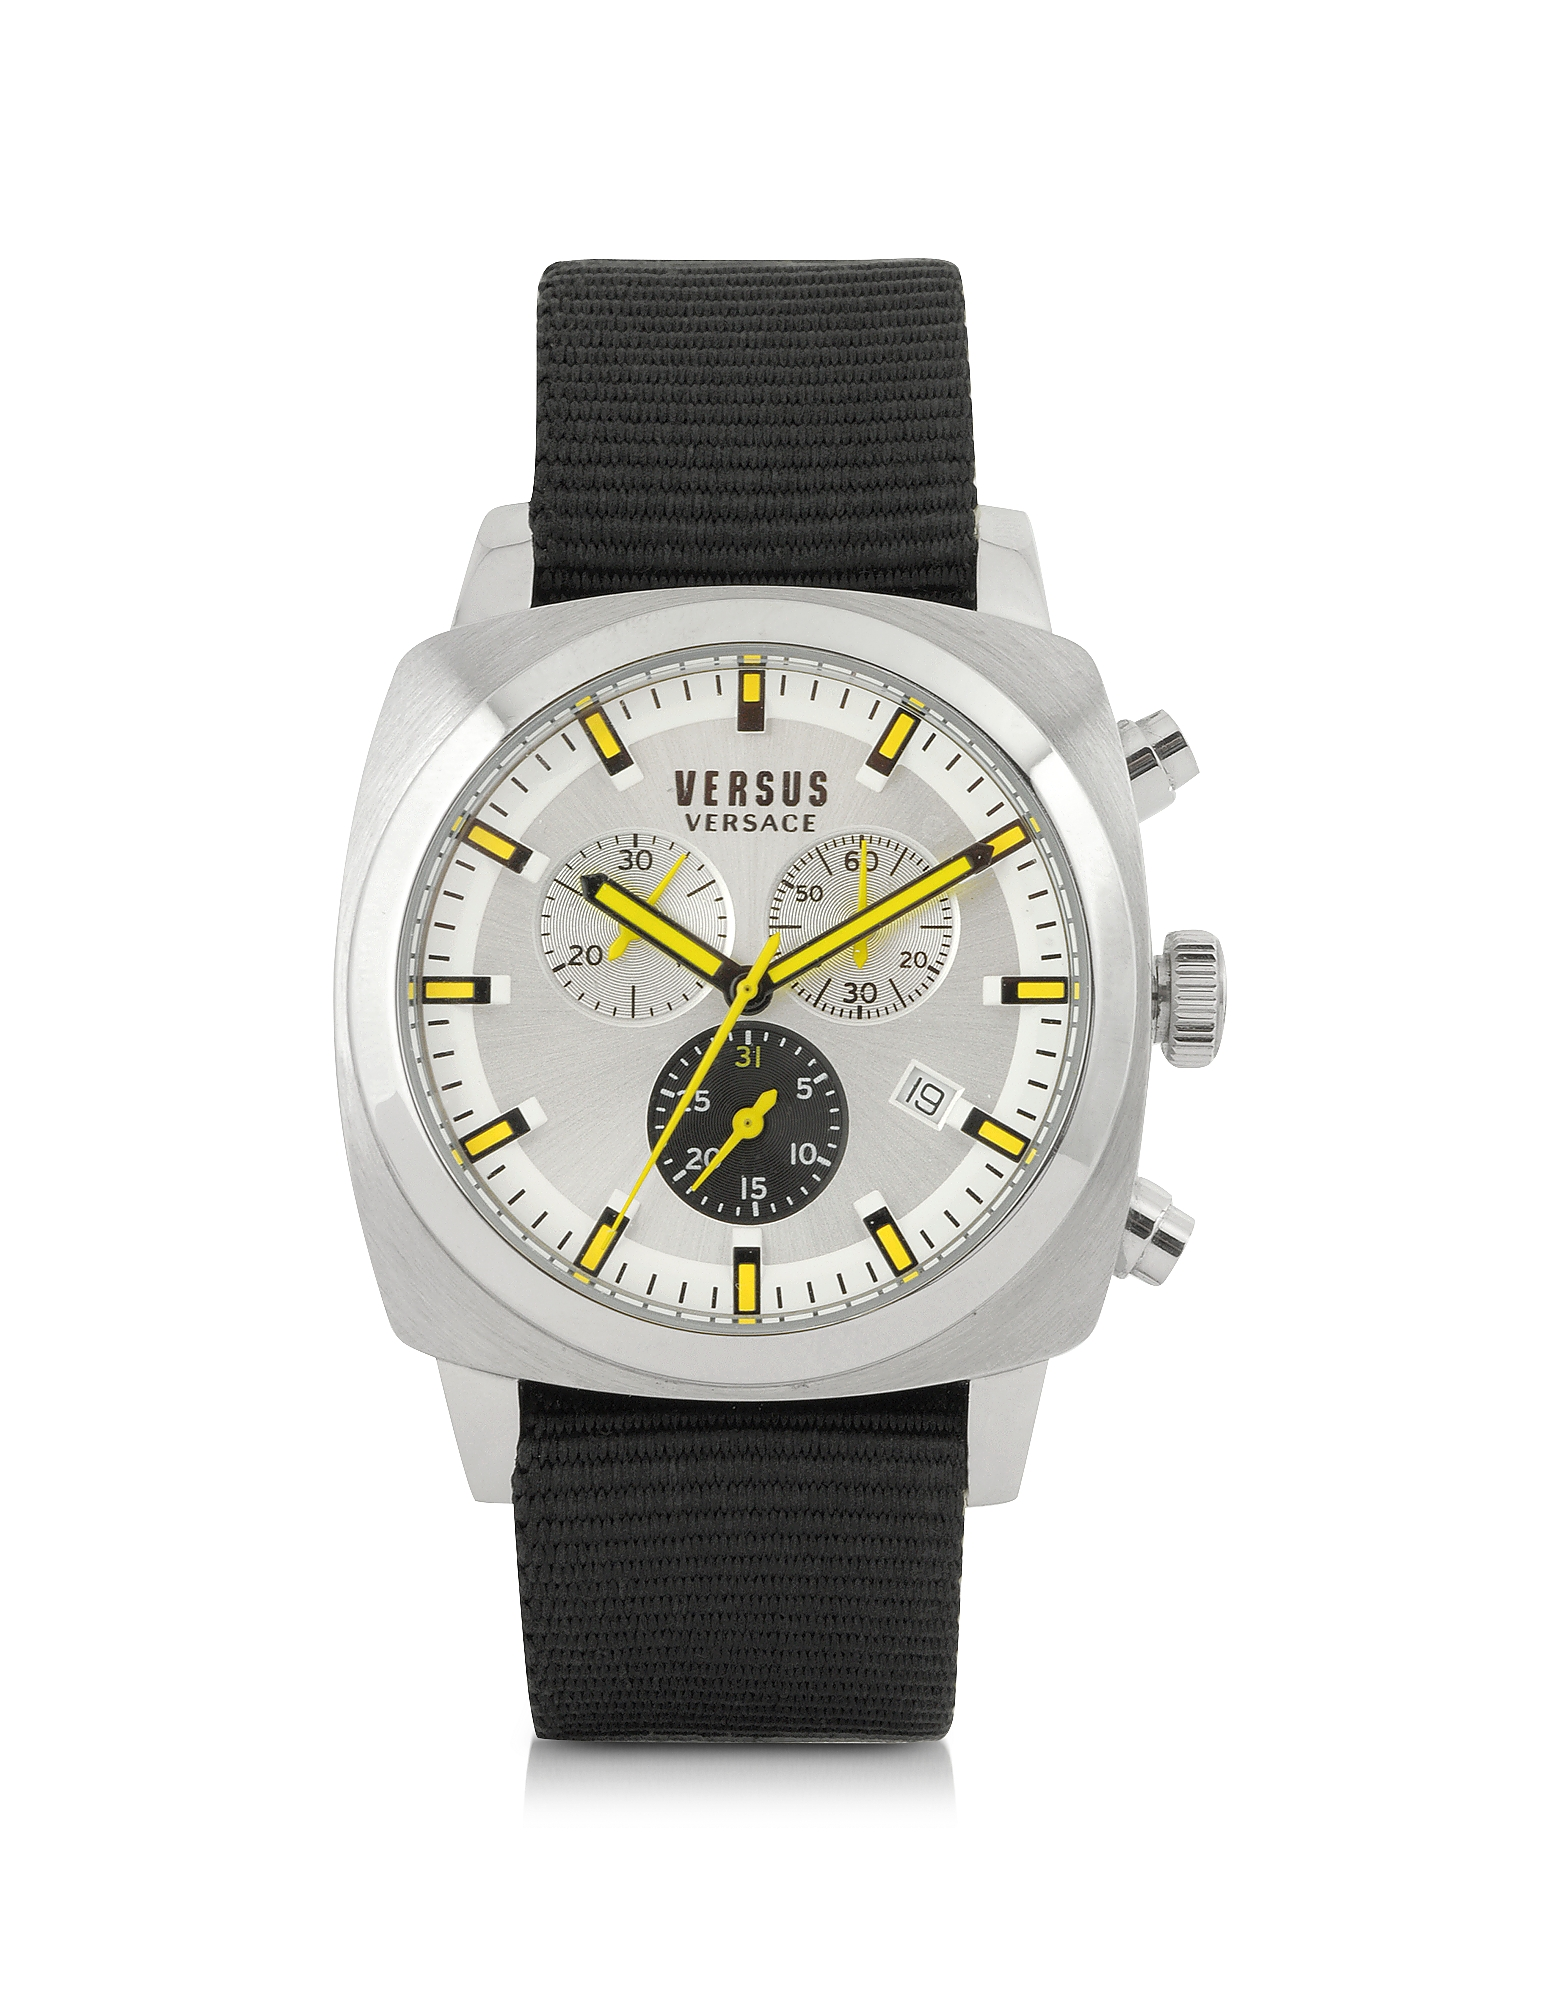 Versace Versus Men's Watches, Riverdale Silver Tone Stainless Steel and Canvas Strap Men's Watch